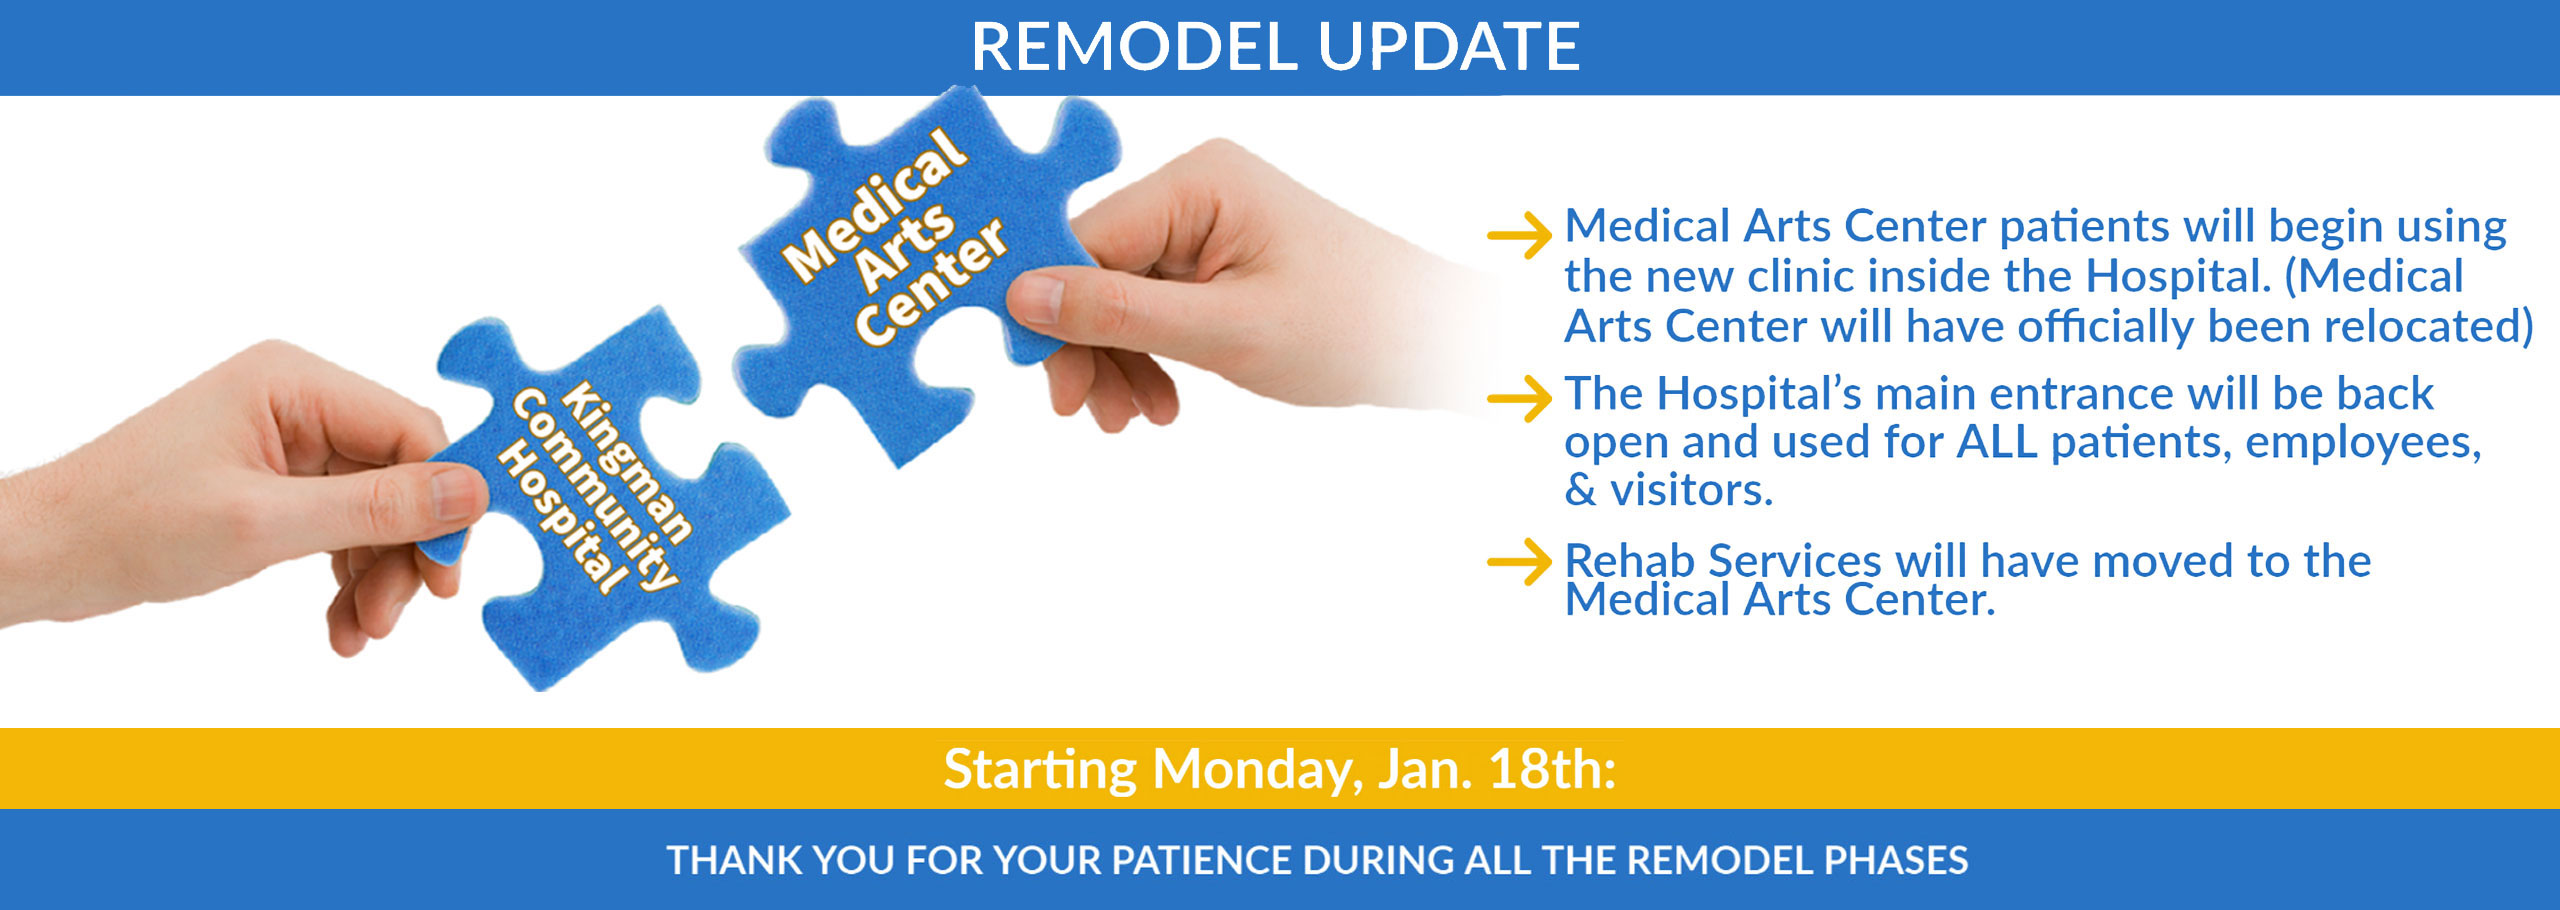 Remodel Update Medical arts center patients will begin using the new clinic inside the hospital.  The hospital's main entrance will be back open and used for all patient, employees & visitors.  Rehab services will have moved to the medical arts center.